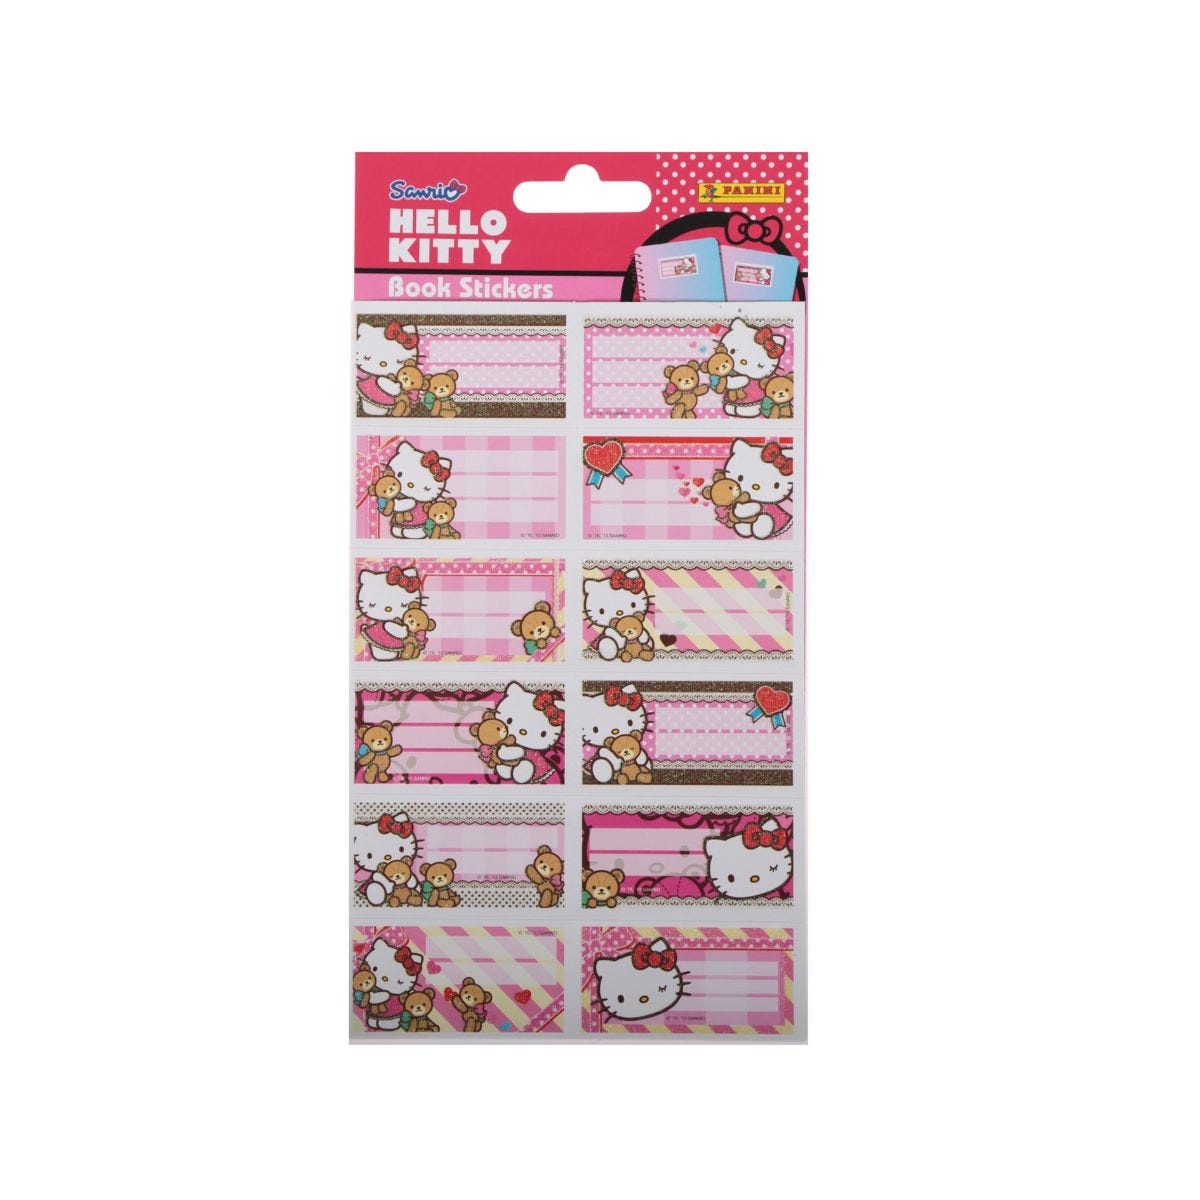 Hello Kitty Book Stickers